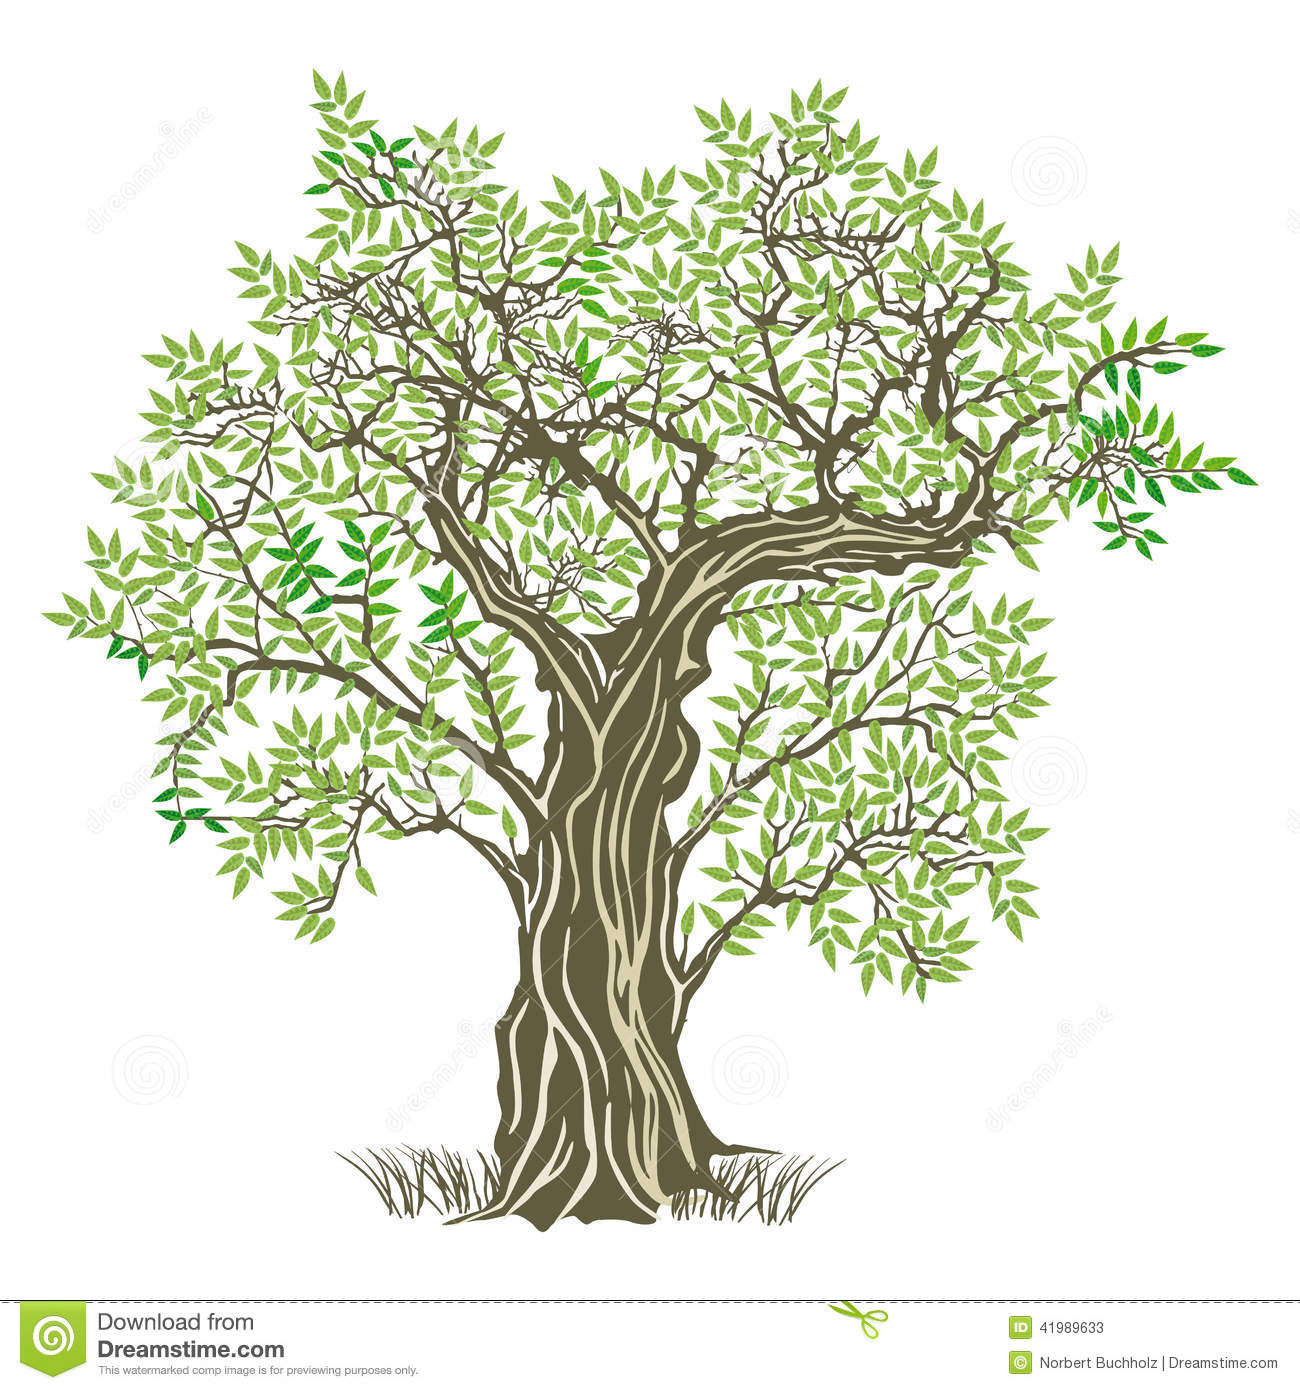 Olive Tree Clipart - Clipart Kid